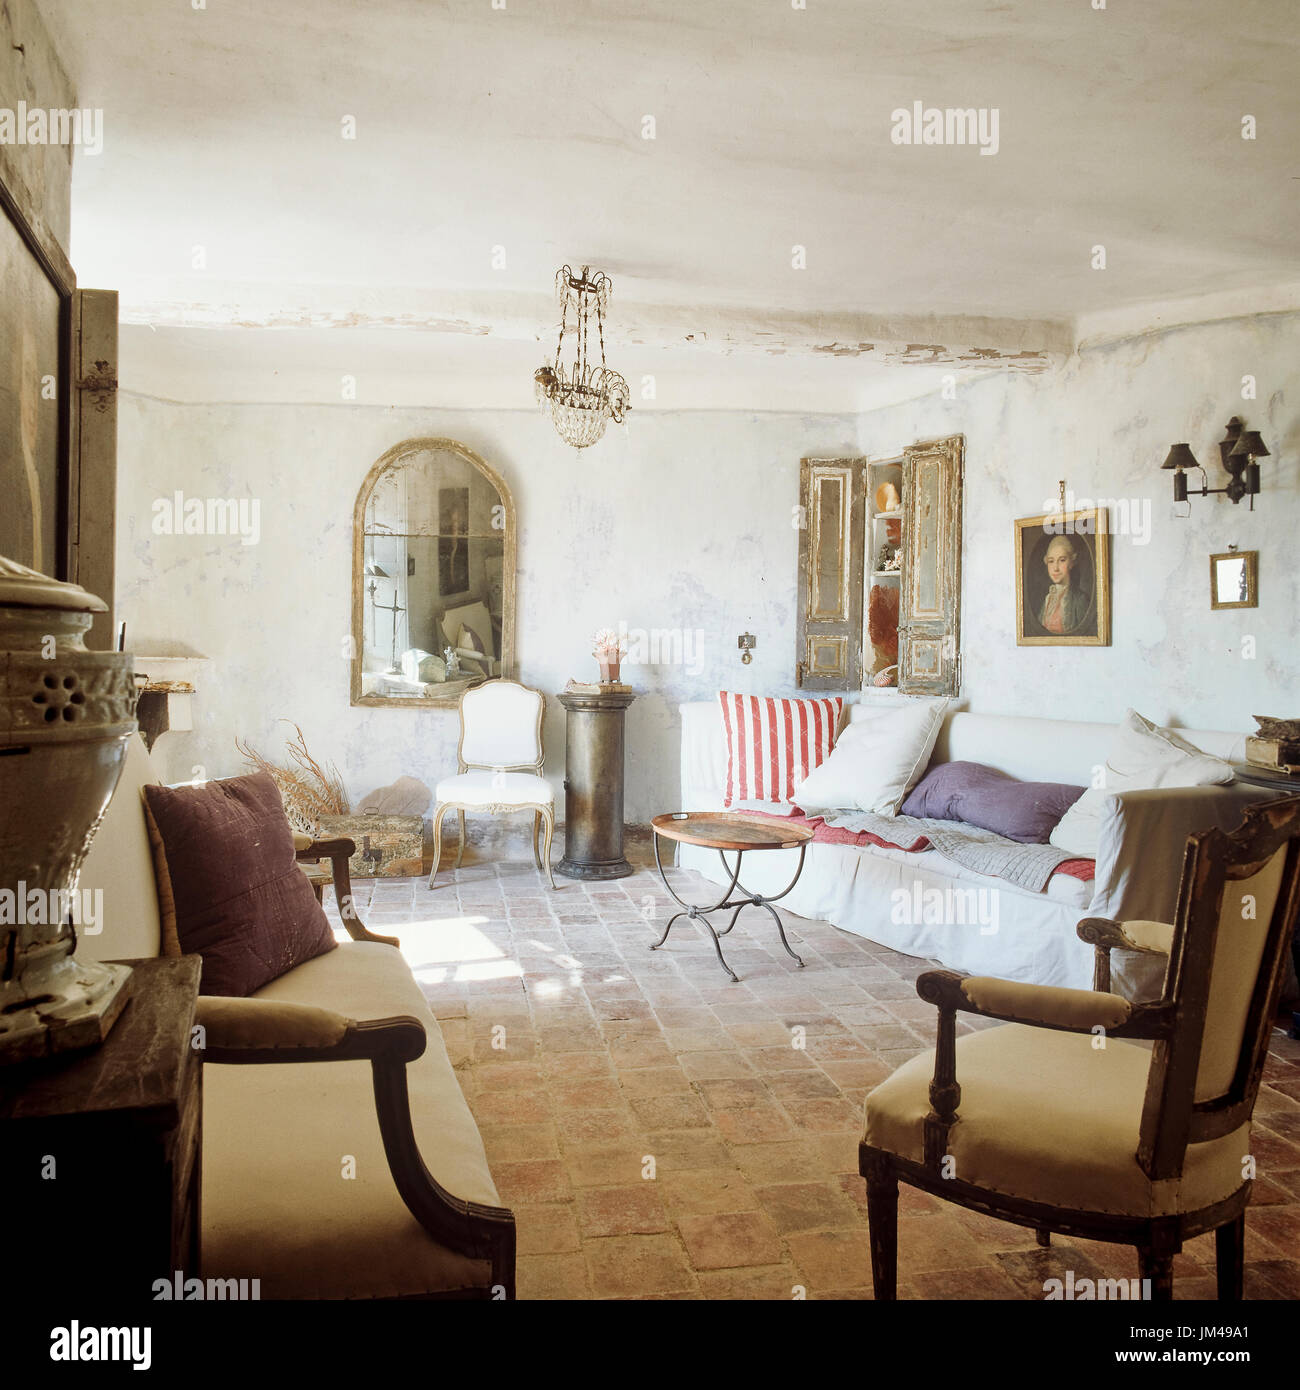 Mediterranean Style Living Room With Vintage Furnishings Stock Photo